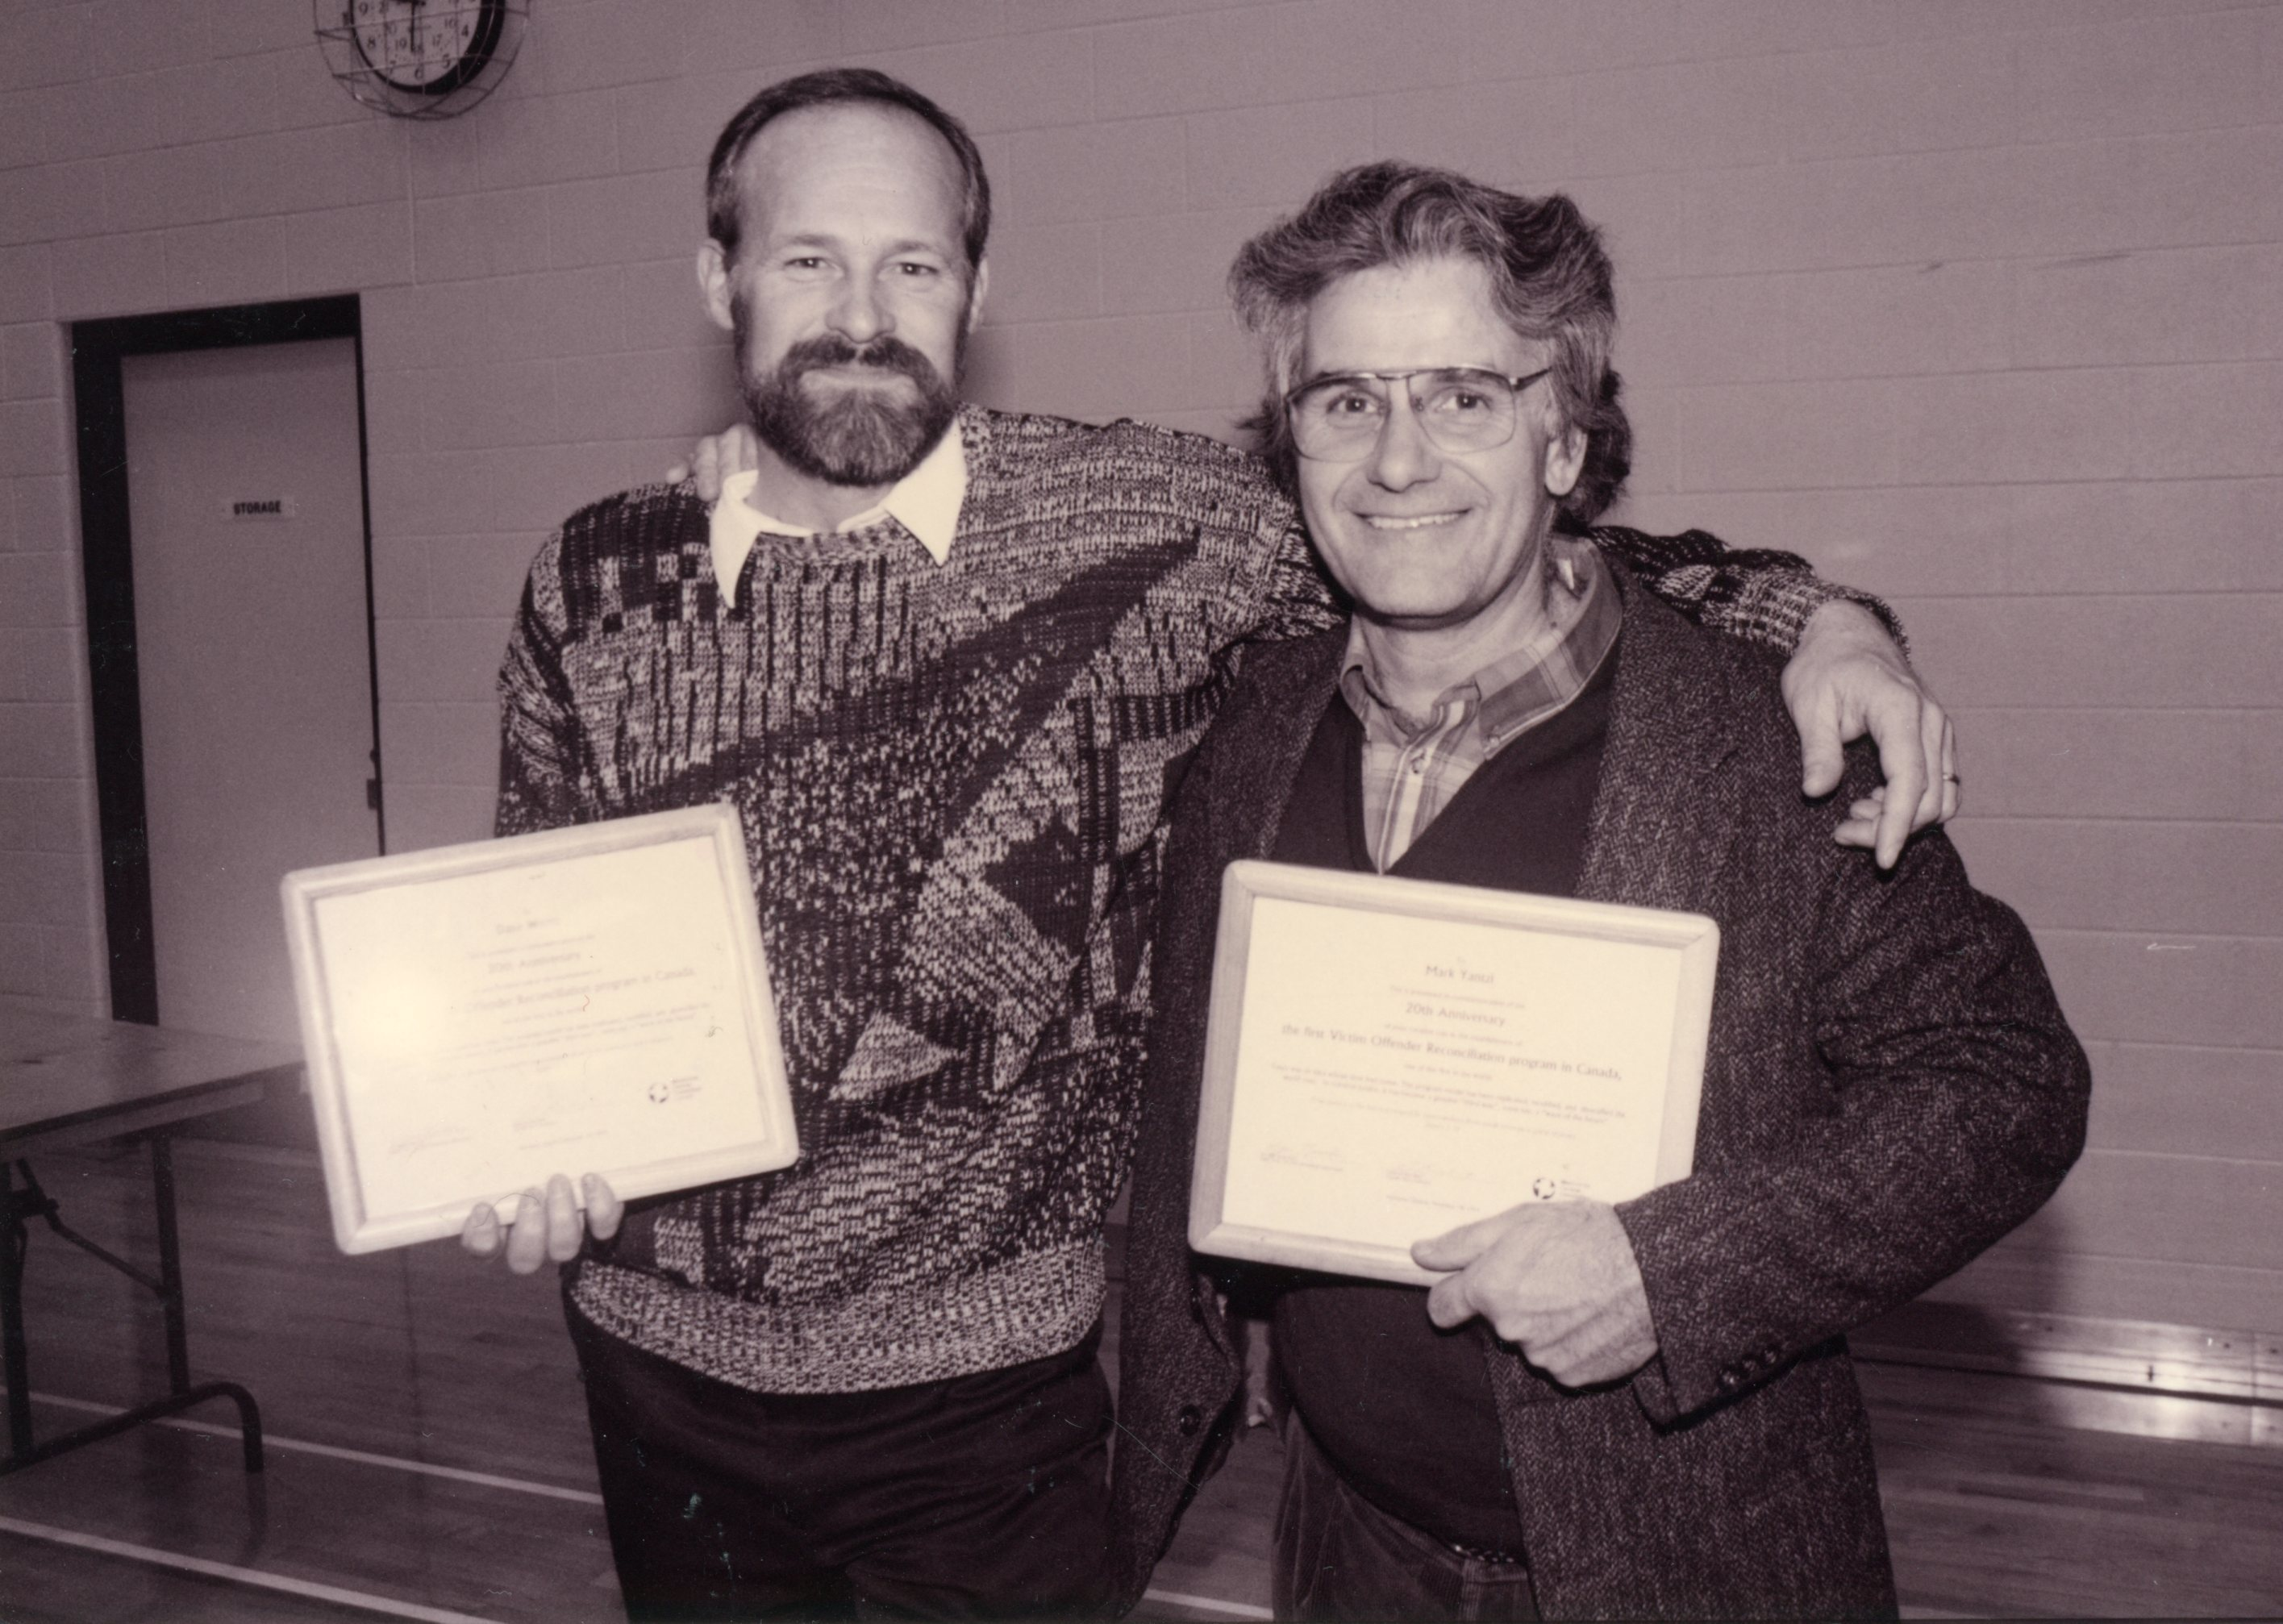 Dave Worth (left) and Mark Yantzi are recognized for their work.